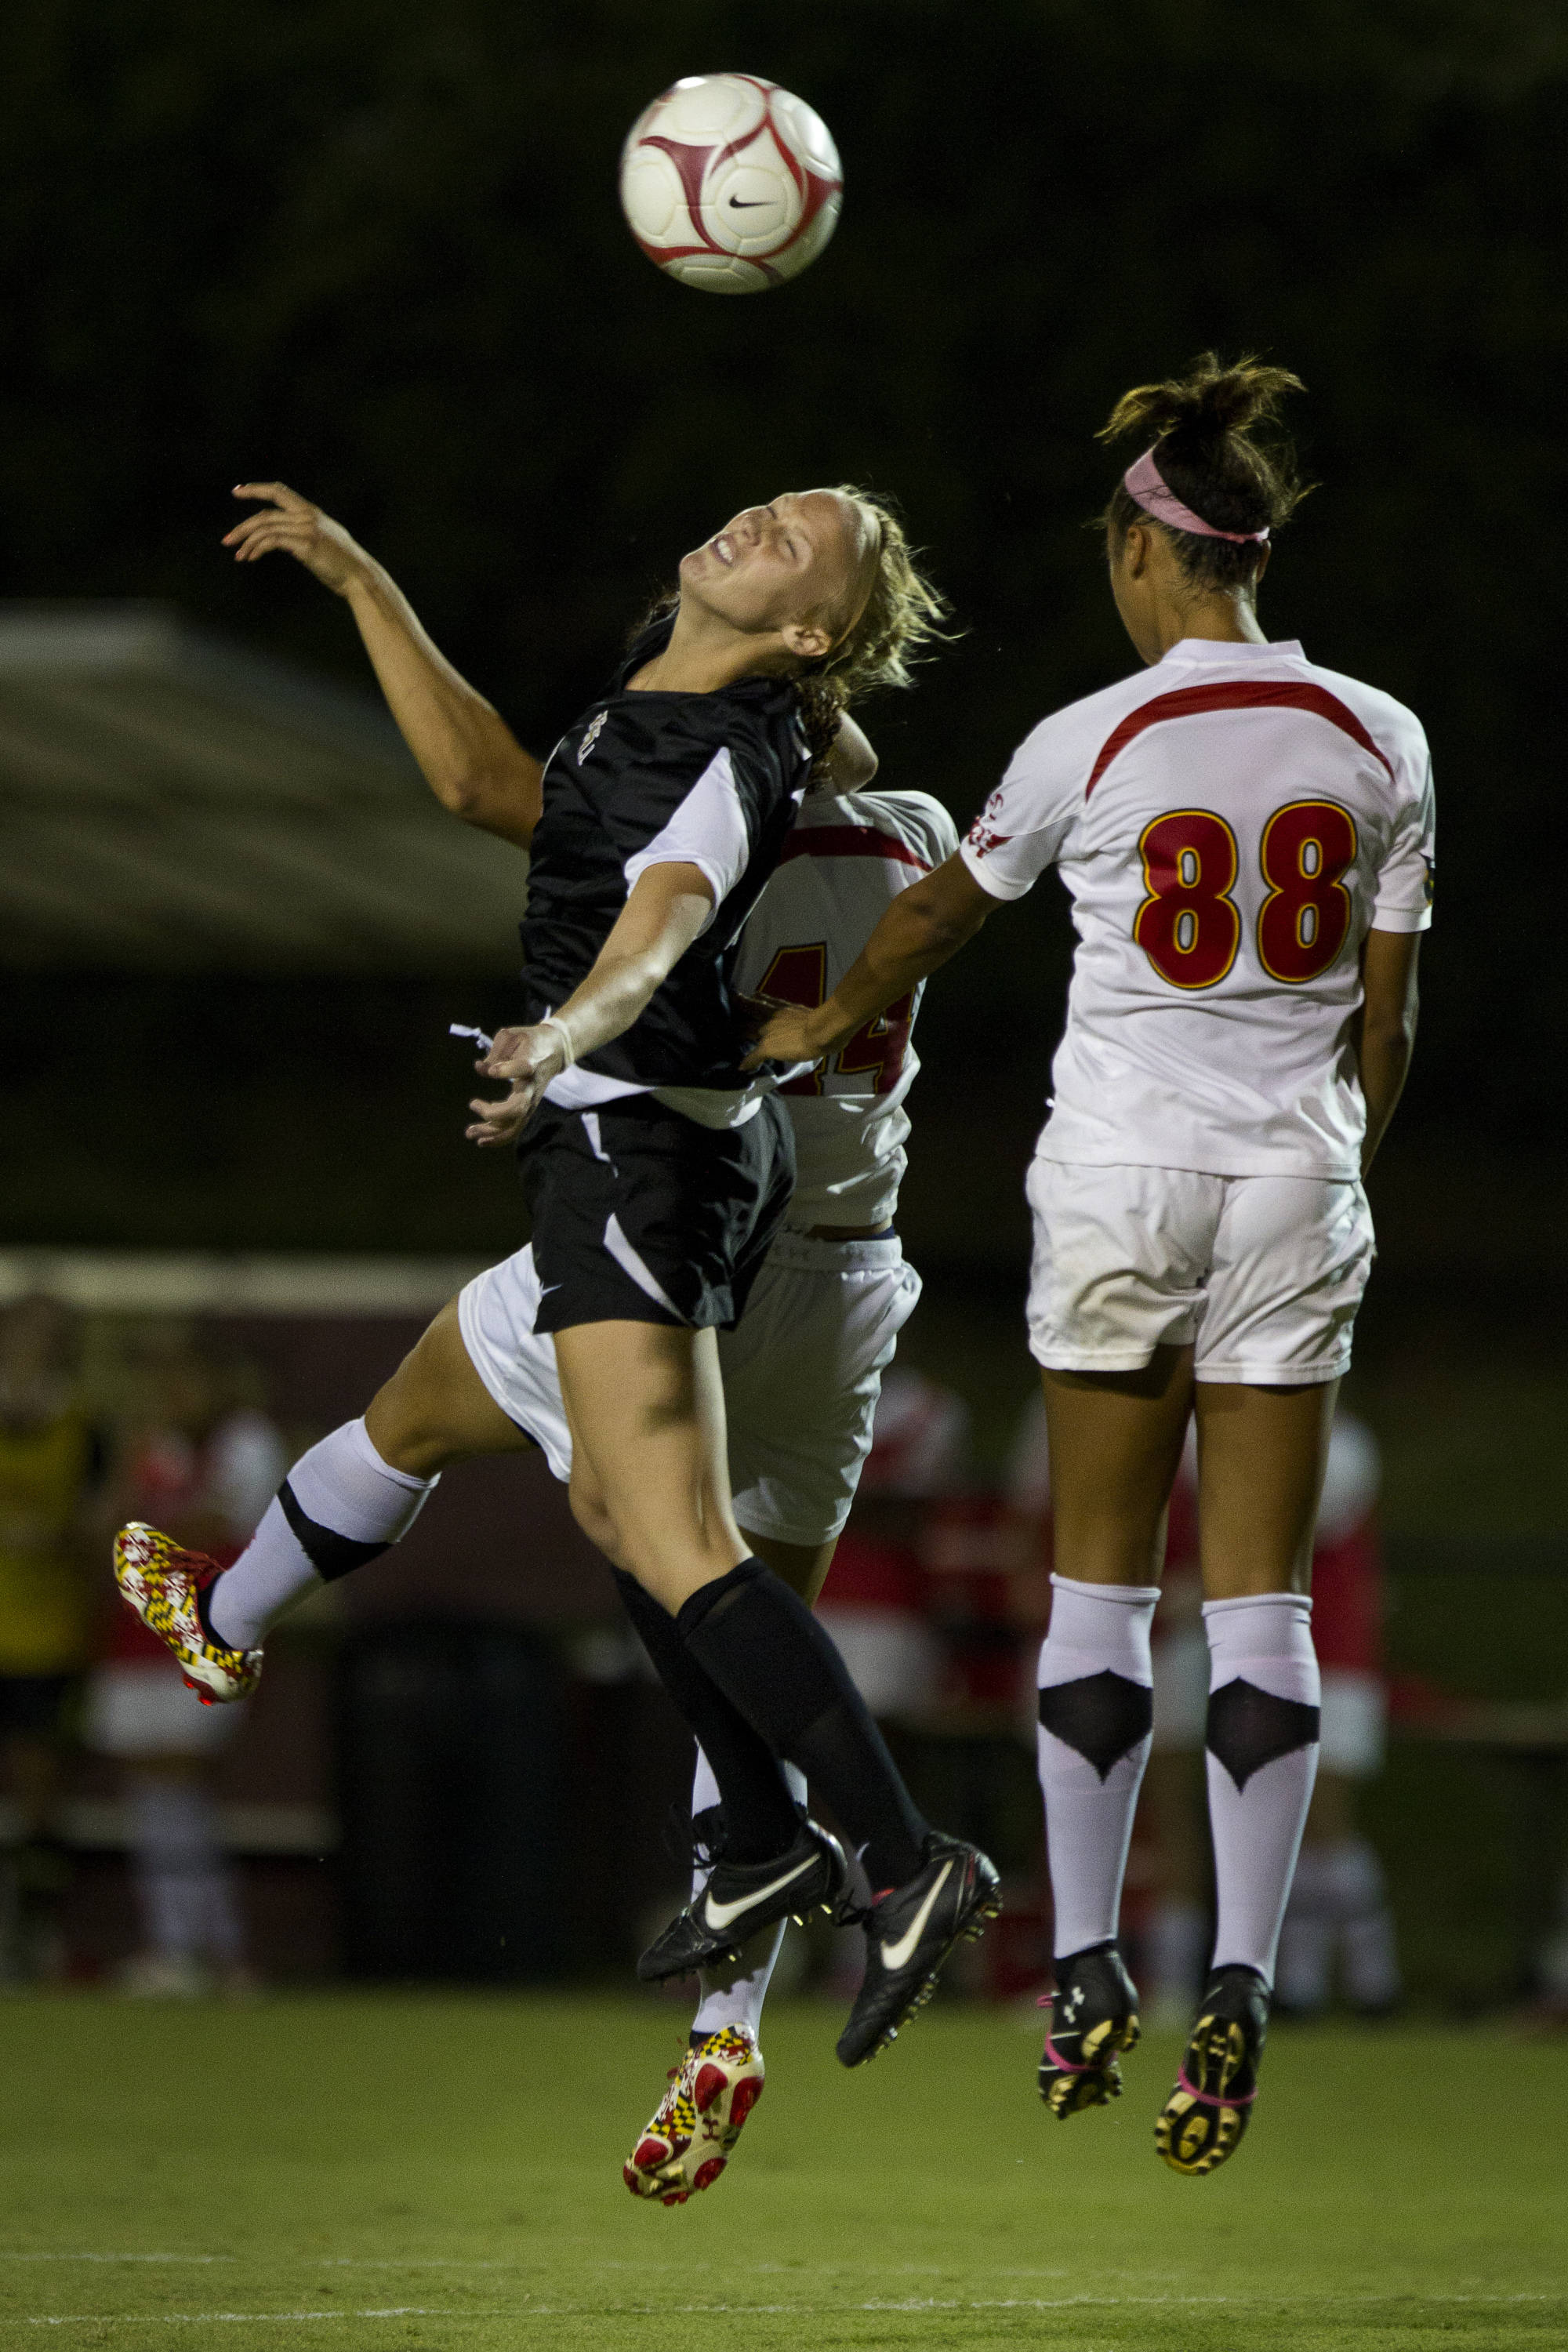 Ella Stephan (17) heads the ball during the game against Maryland on October 13, 2011.